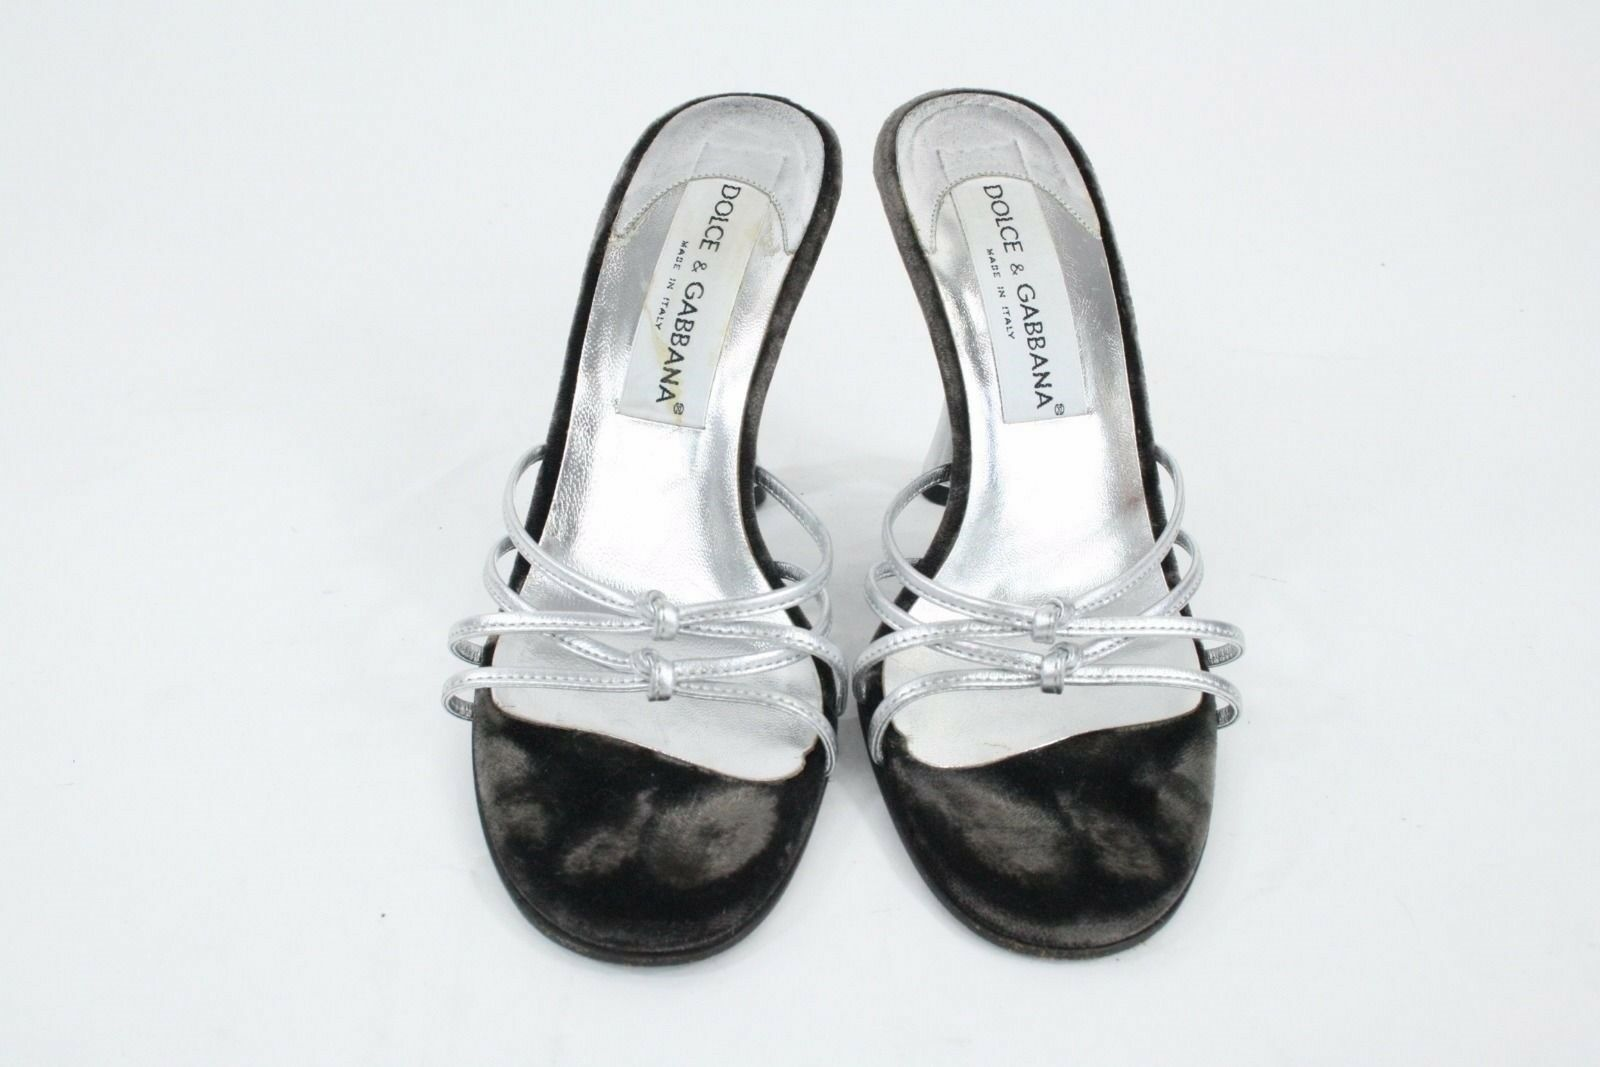 Dolce & Stiletto Gabbanna Silver Leder Strappy Front Backless Stiletto & Sandales Sz 35.5 c9b149